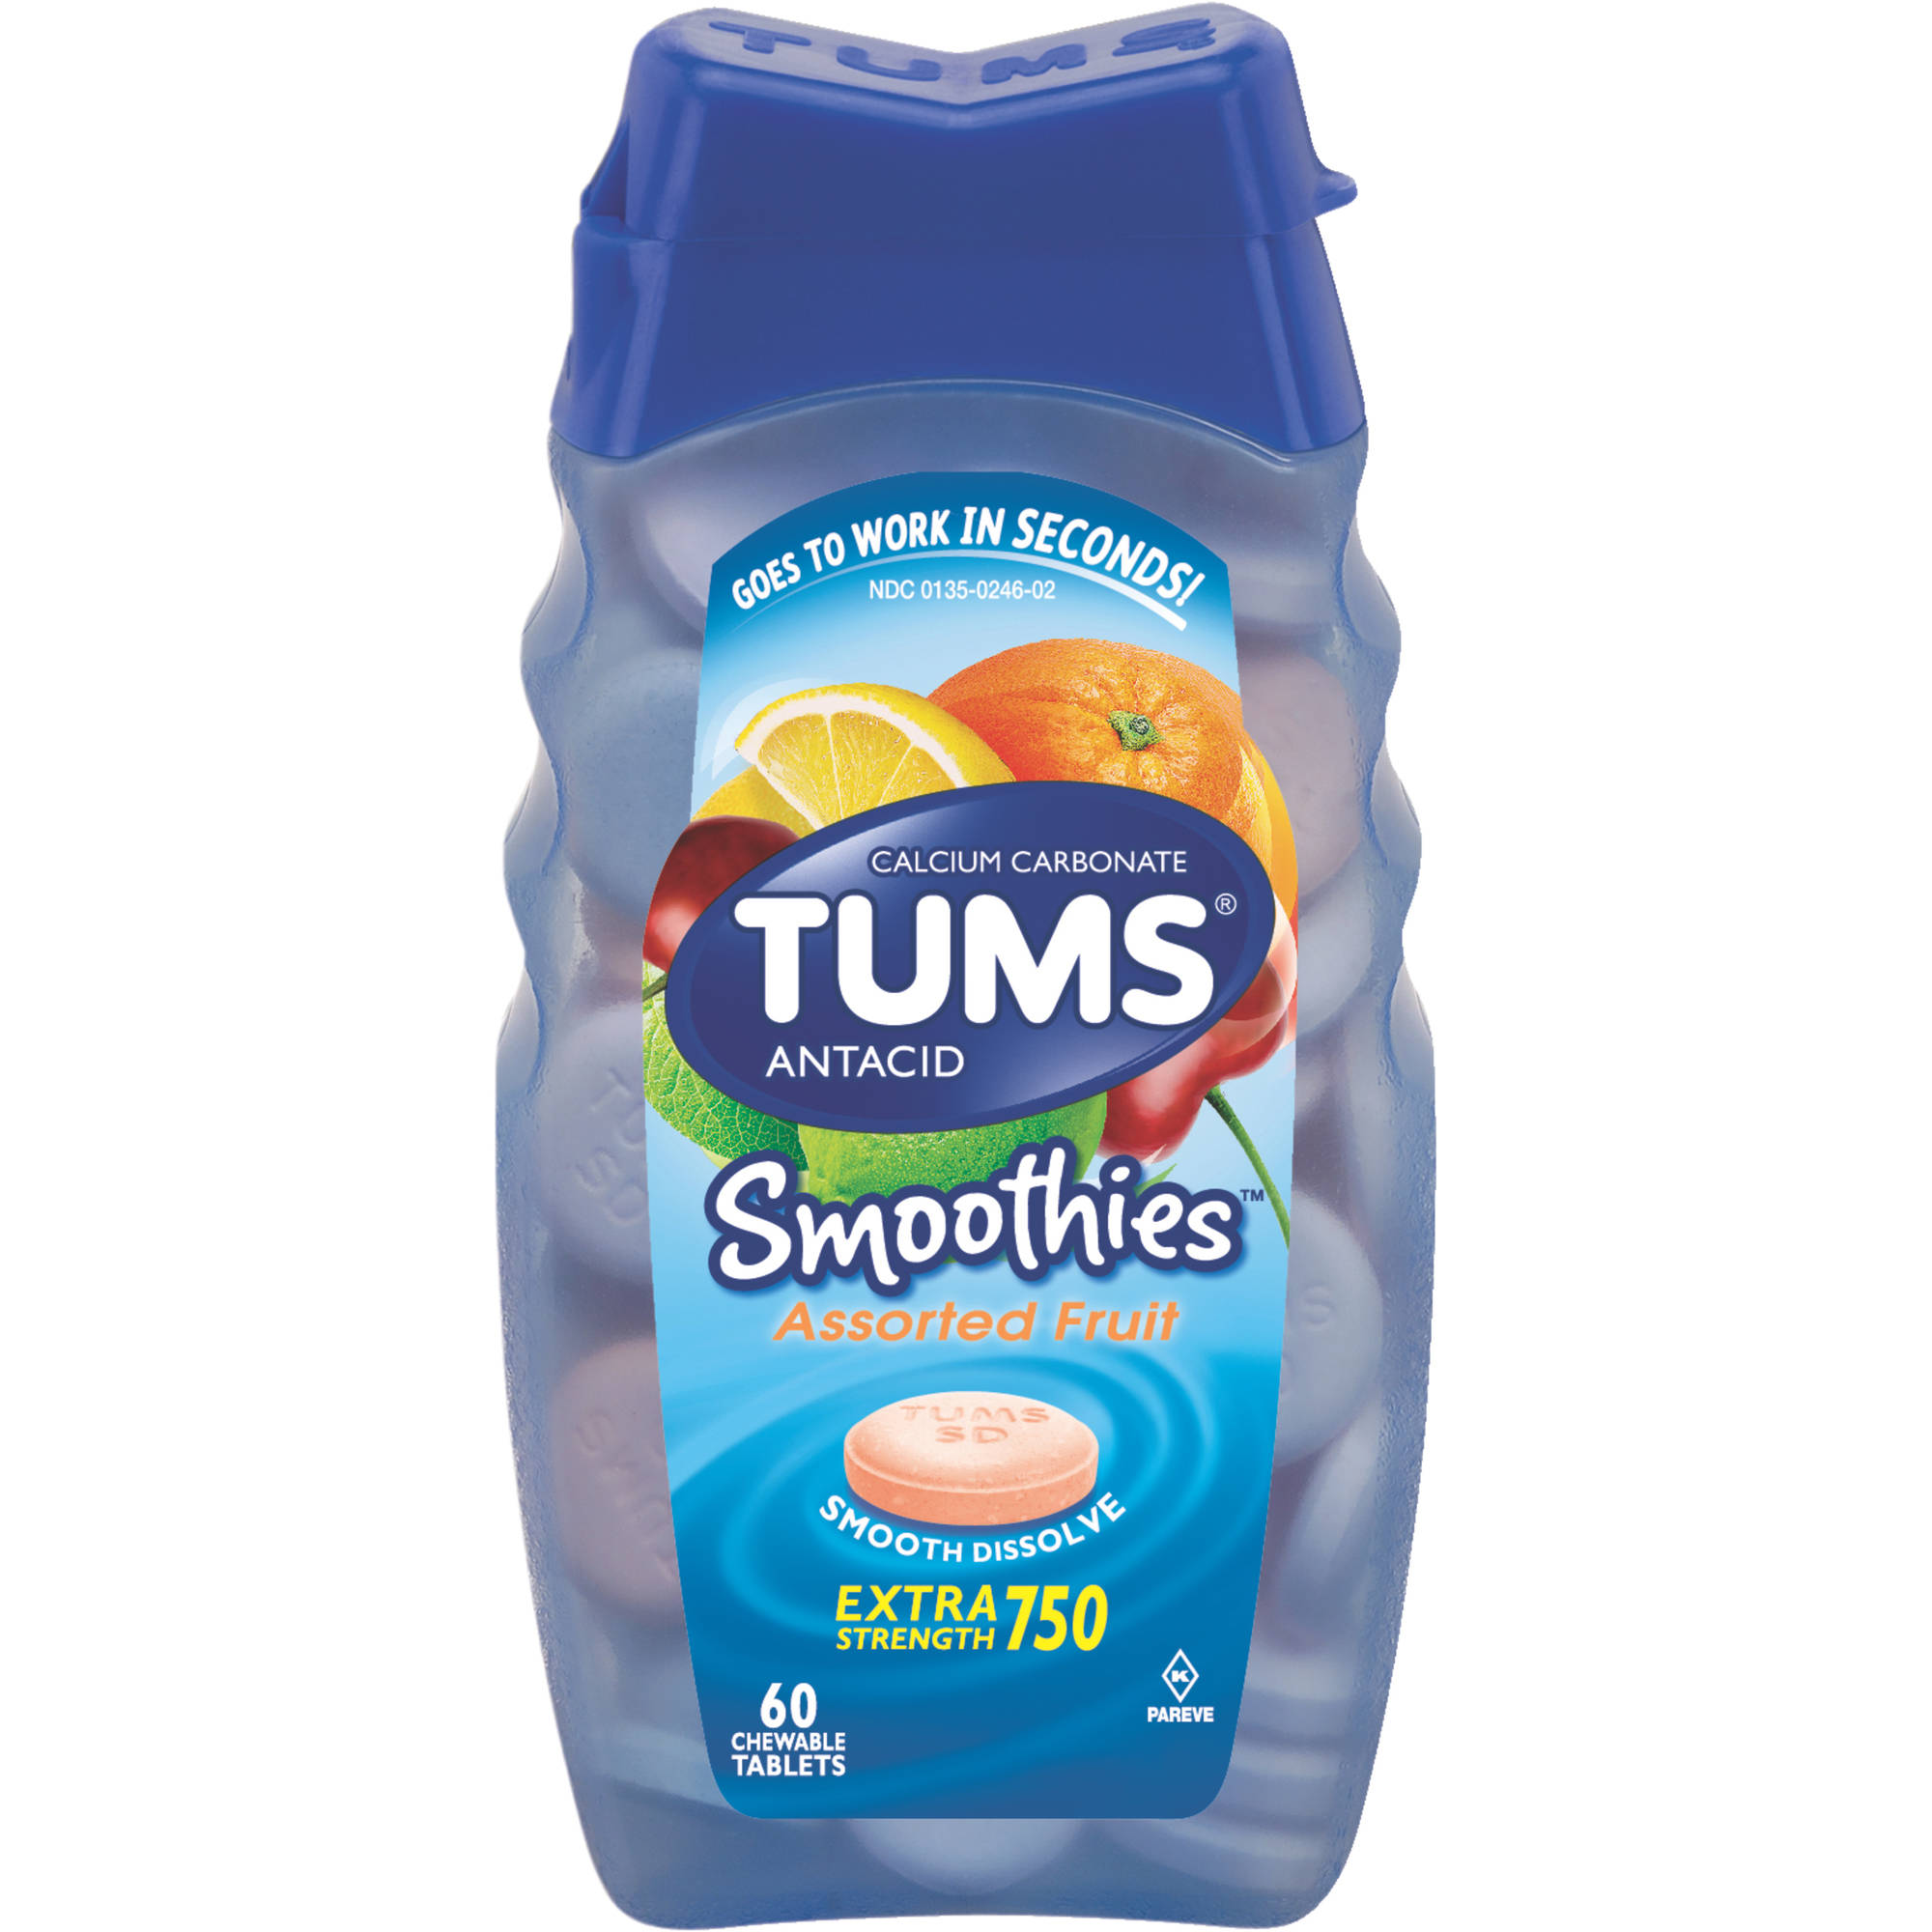 TUMS Smoothies Antacid Relief Calcium Smooth Dissolving Tablets, Assorted Fruit Flavor, 750 mg, 60 Tablets